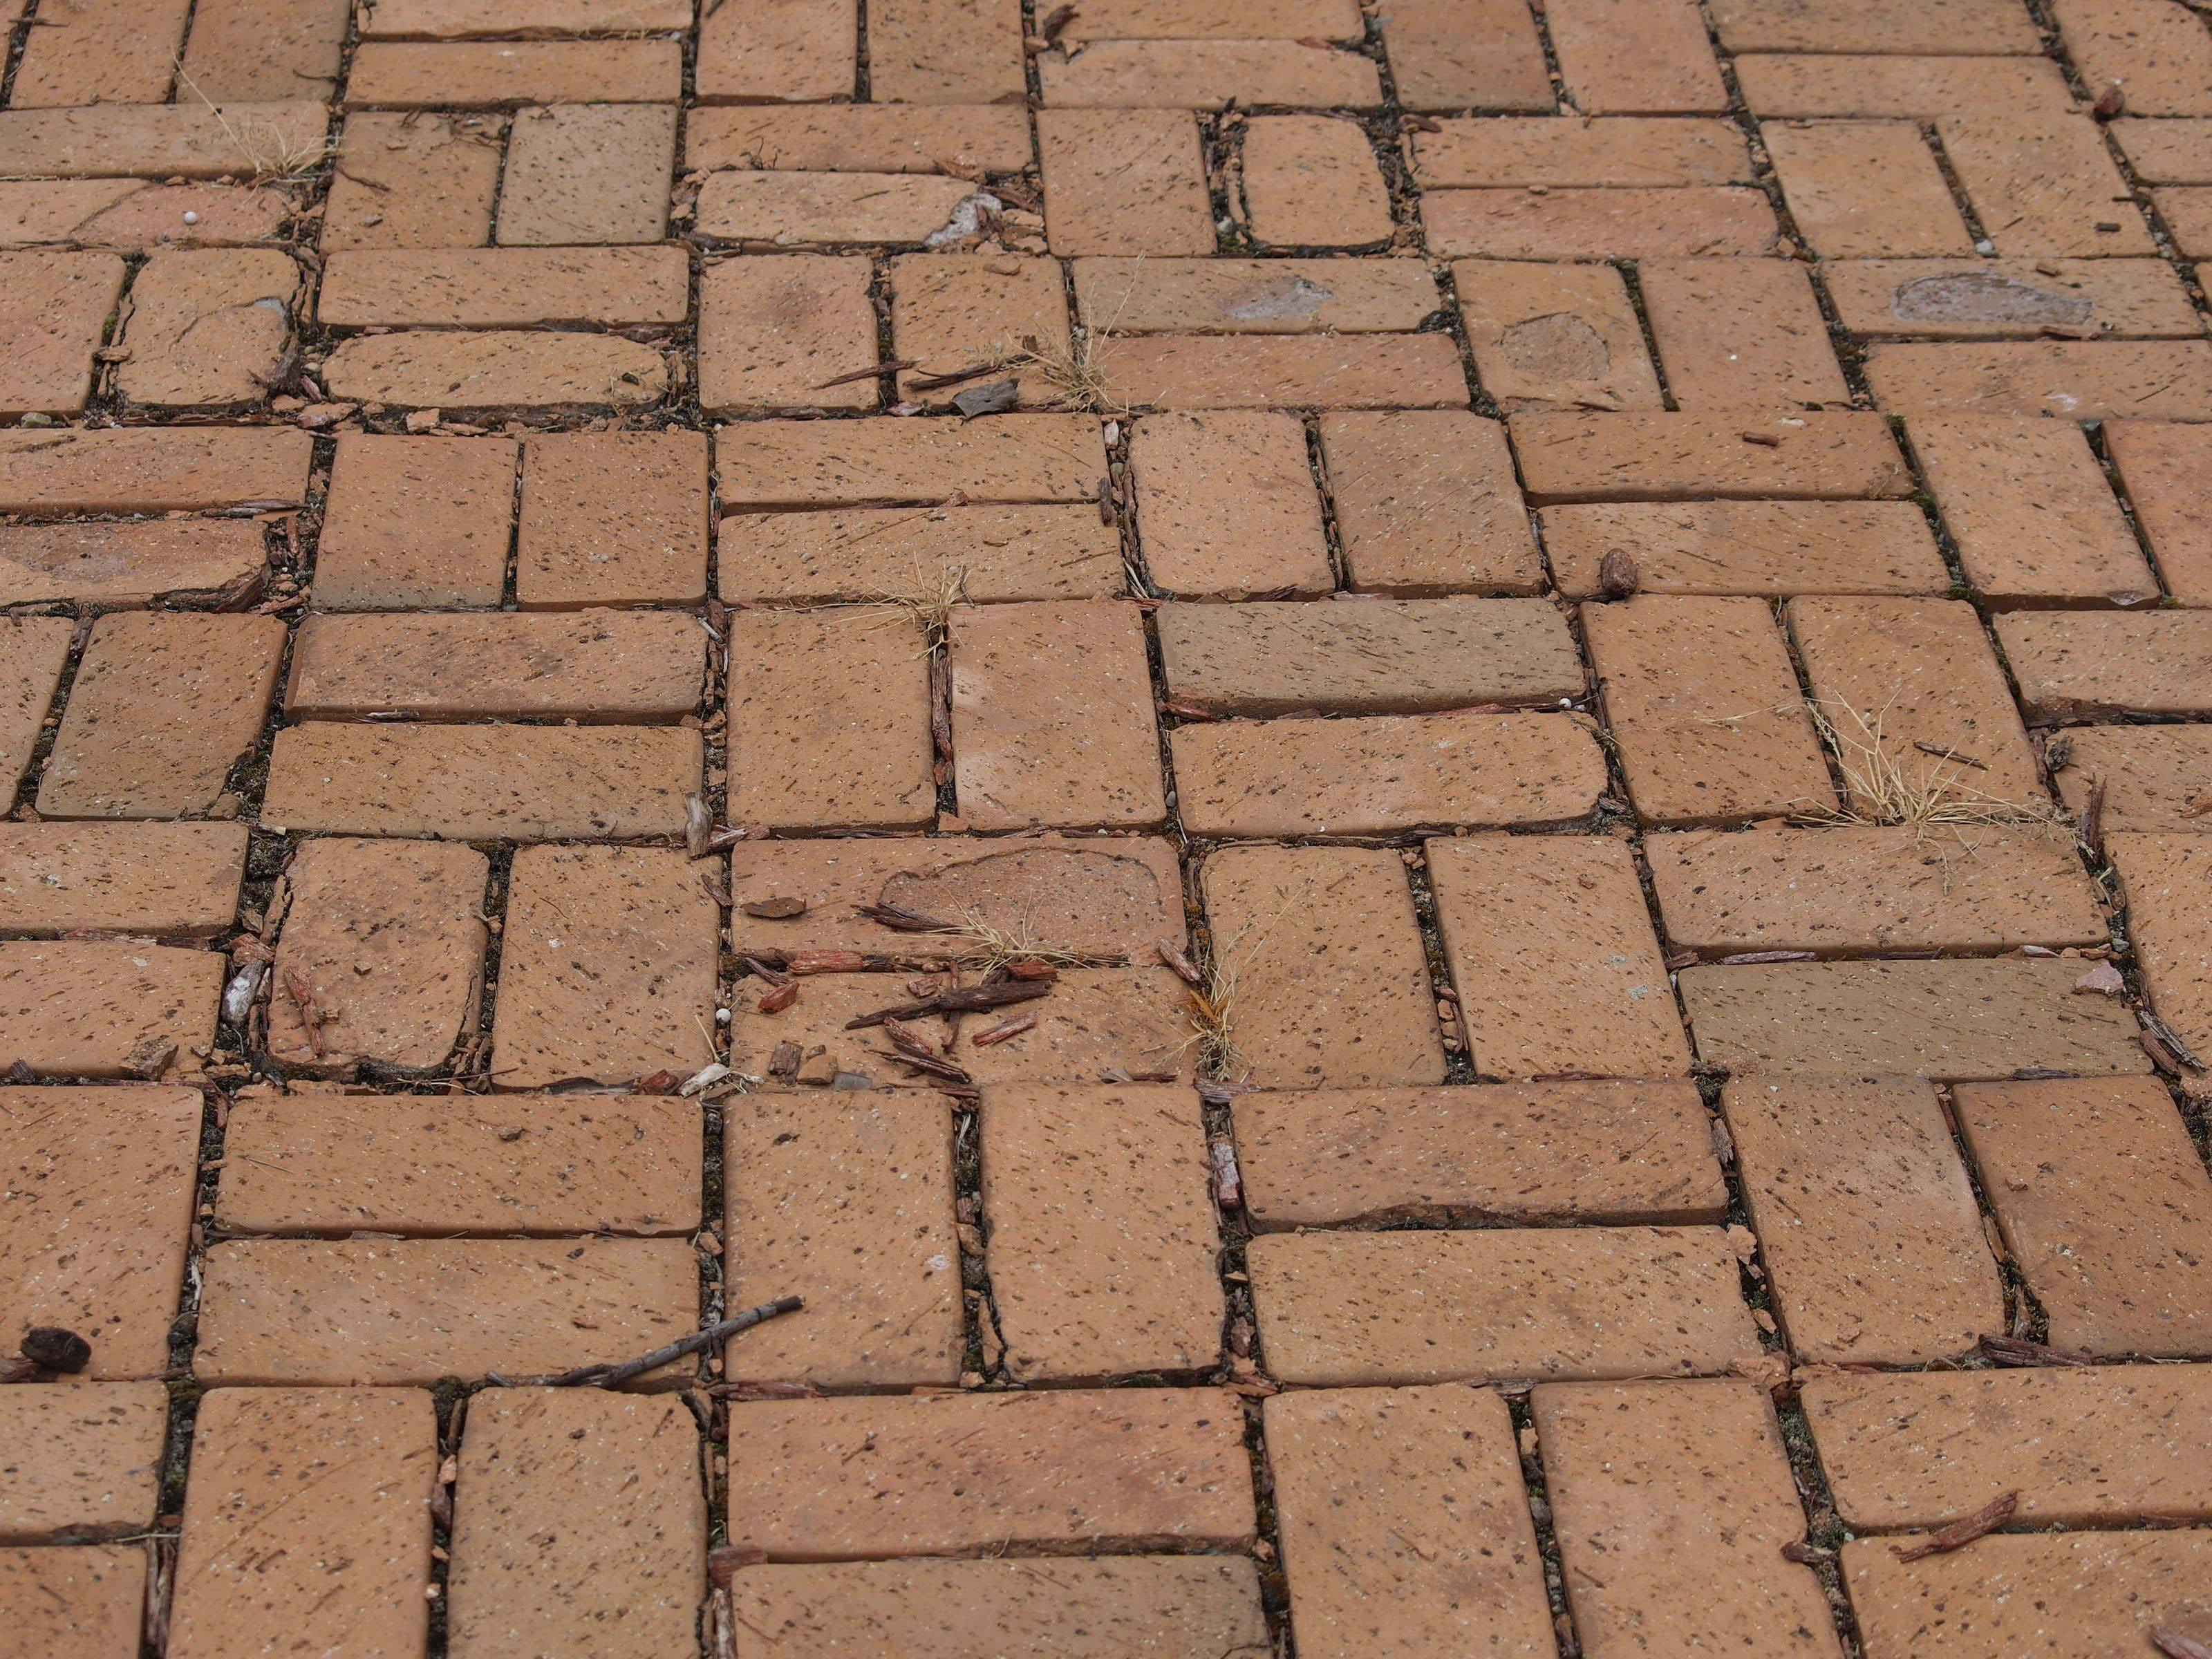 brick walkway basket weave pattern 5c e0fb a329